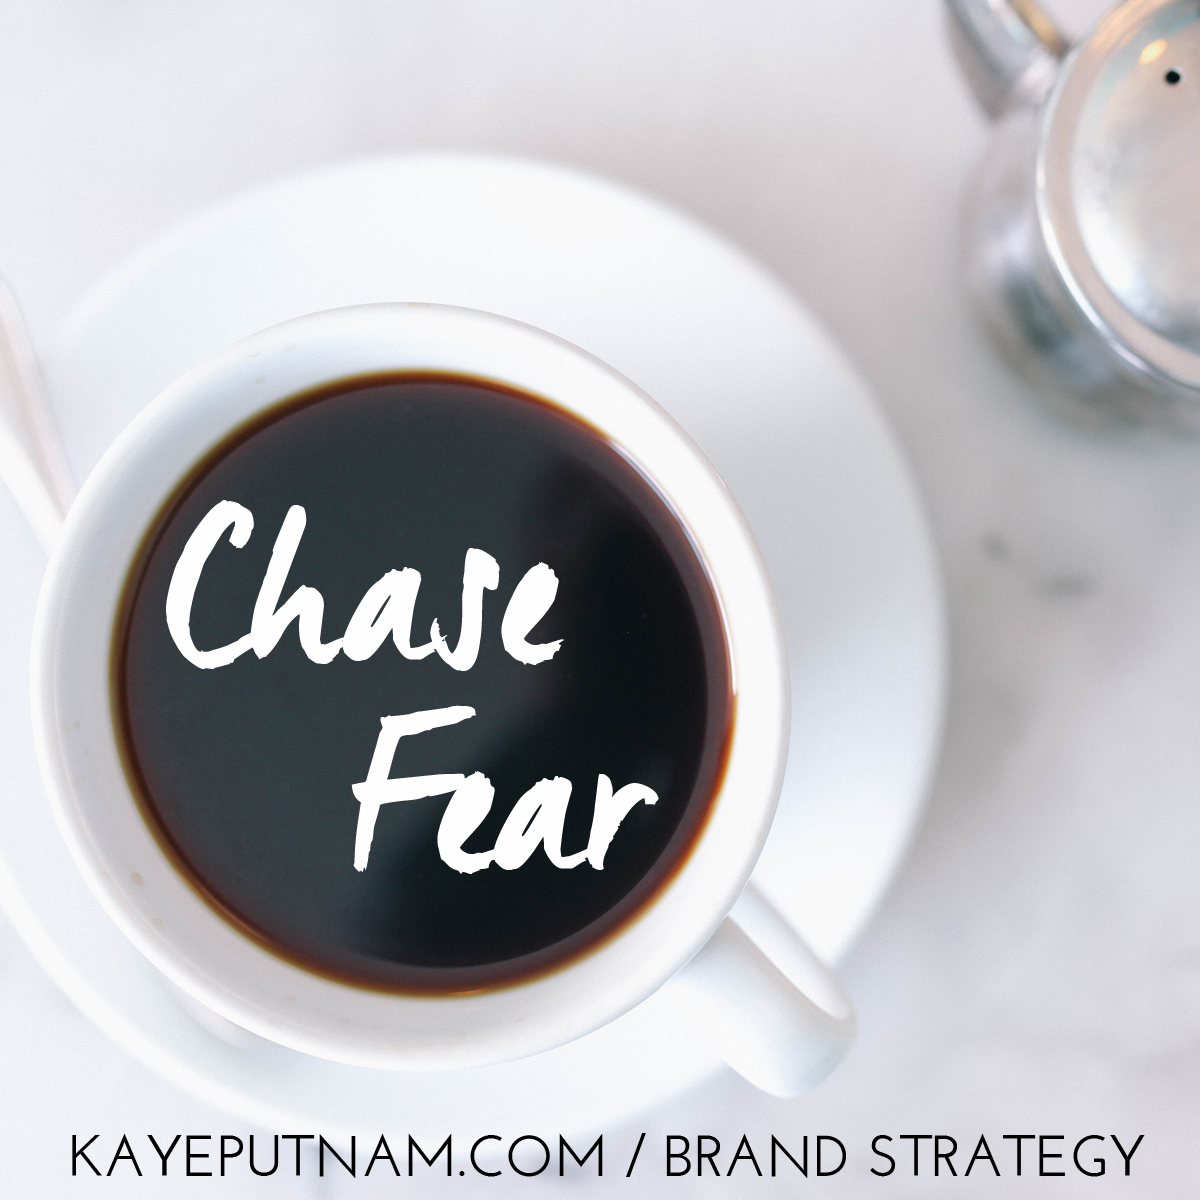 Chase fear. #InDemandBrand